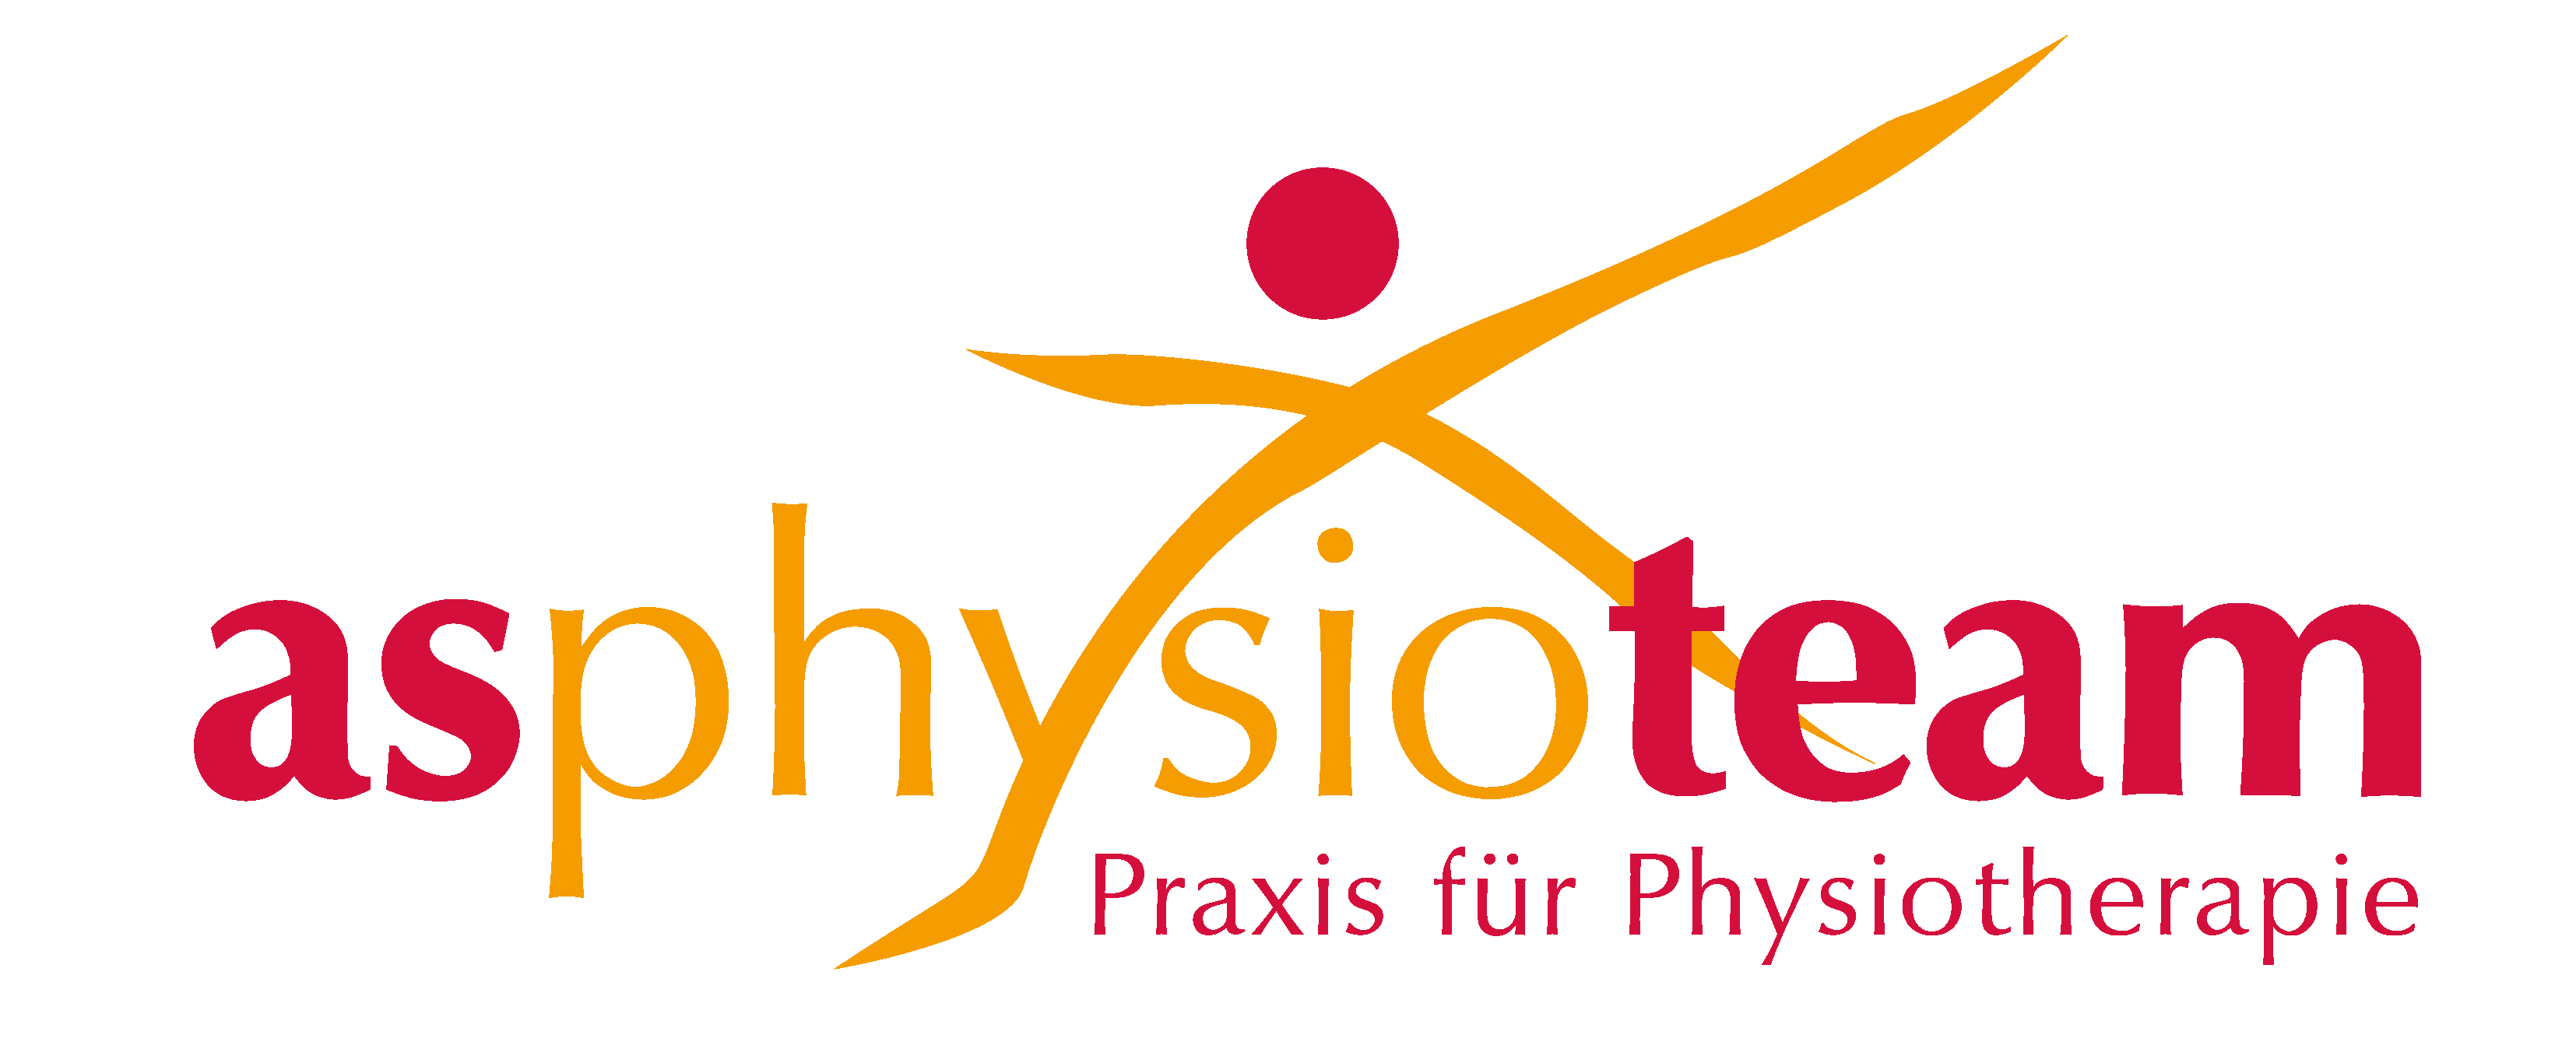 asphysioteam.de